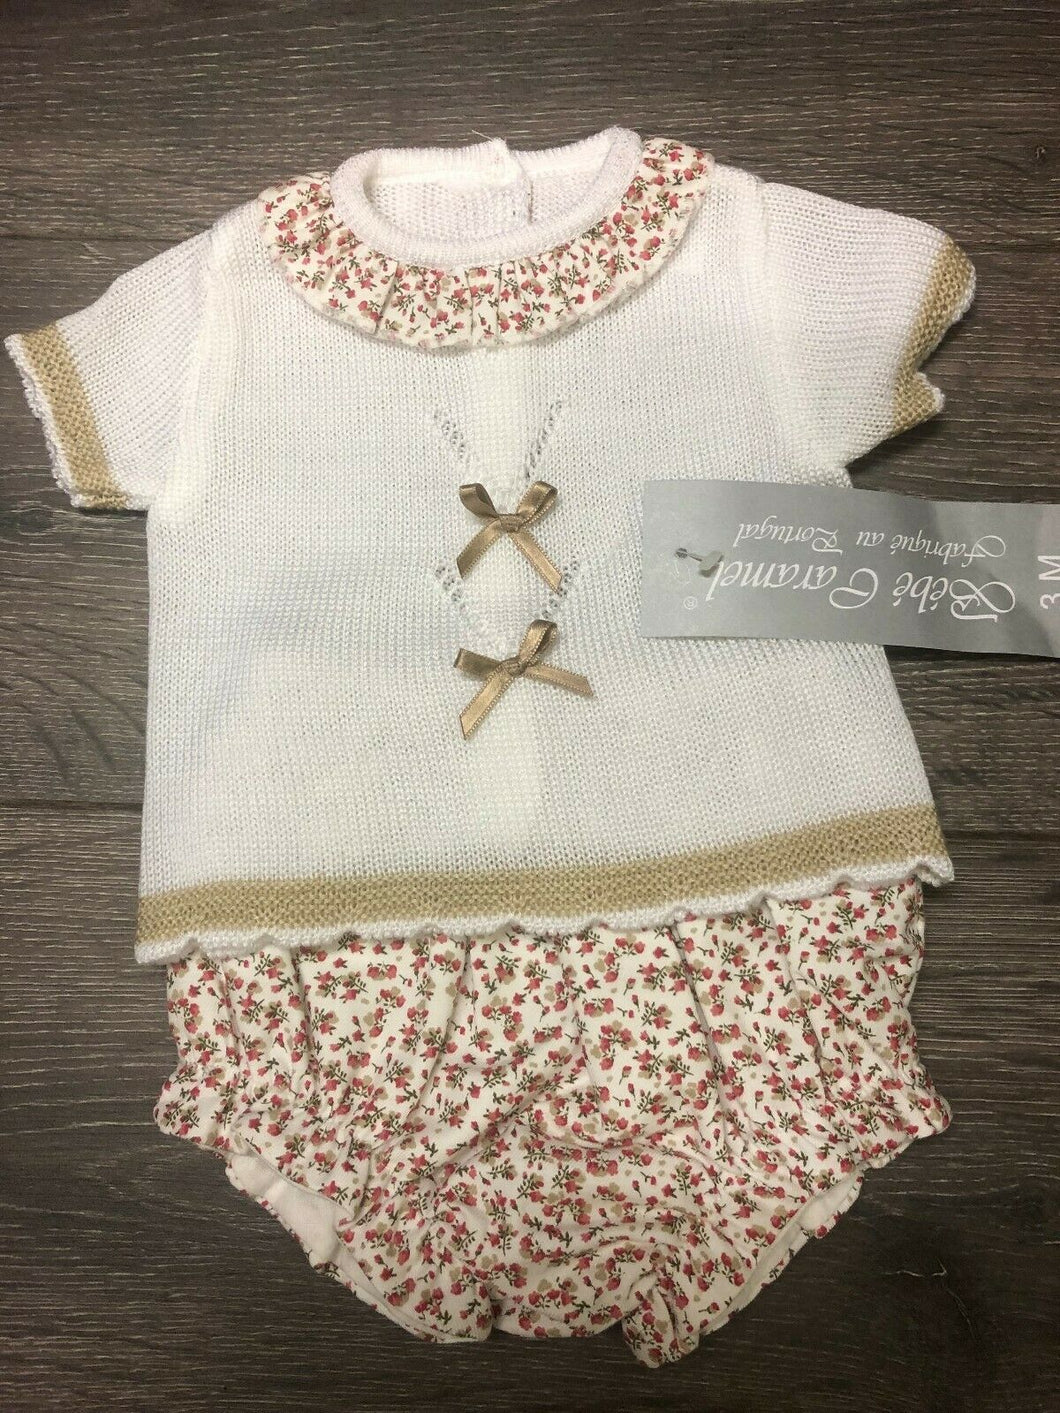 Baby Girls Spanish Style Portuguese Outfit Rosebuds